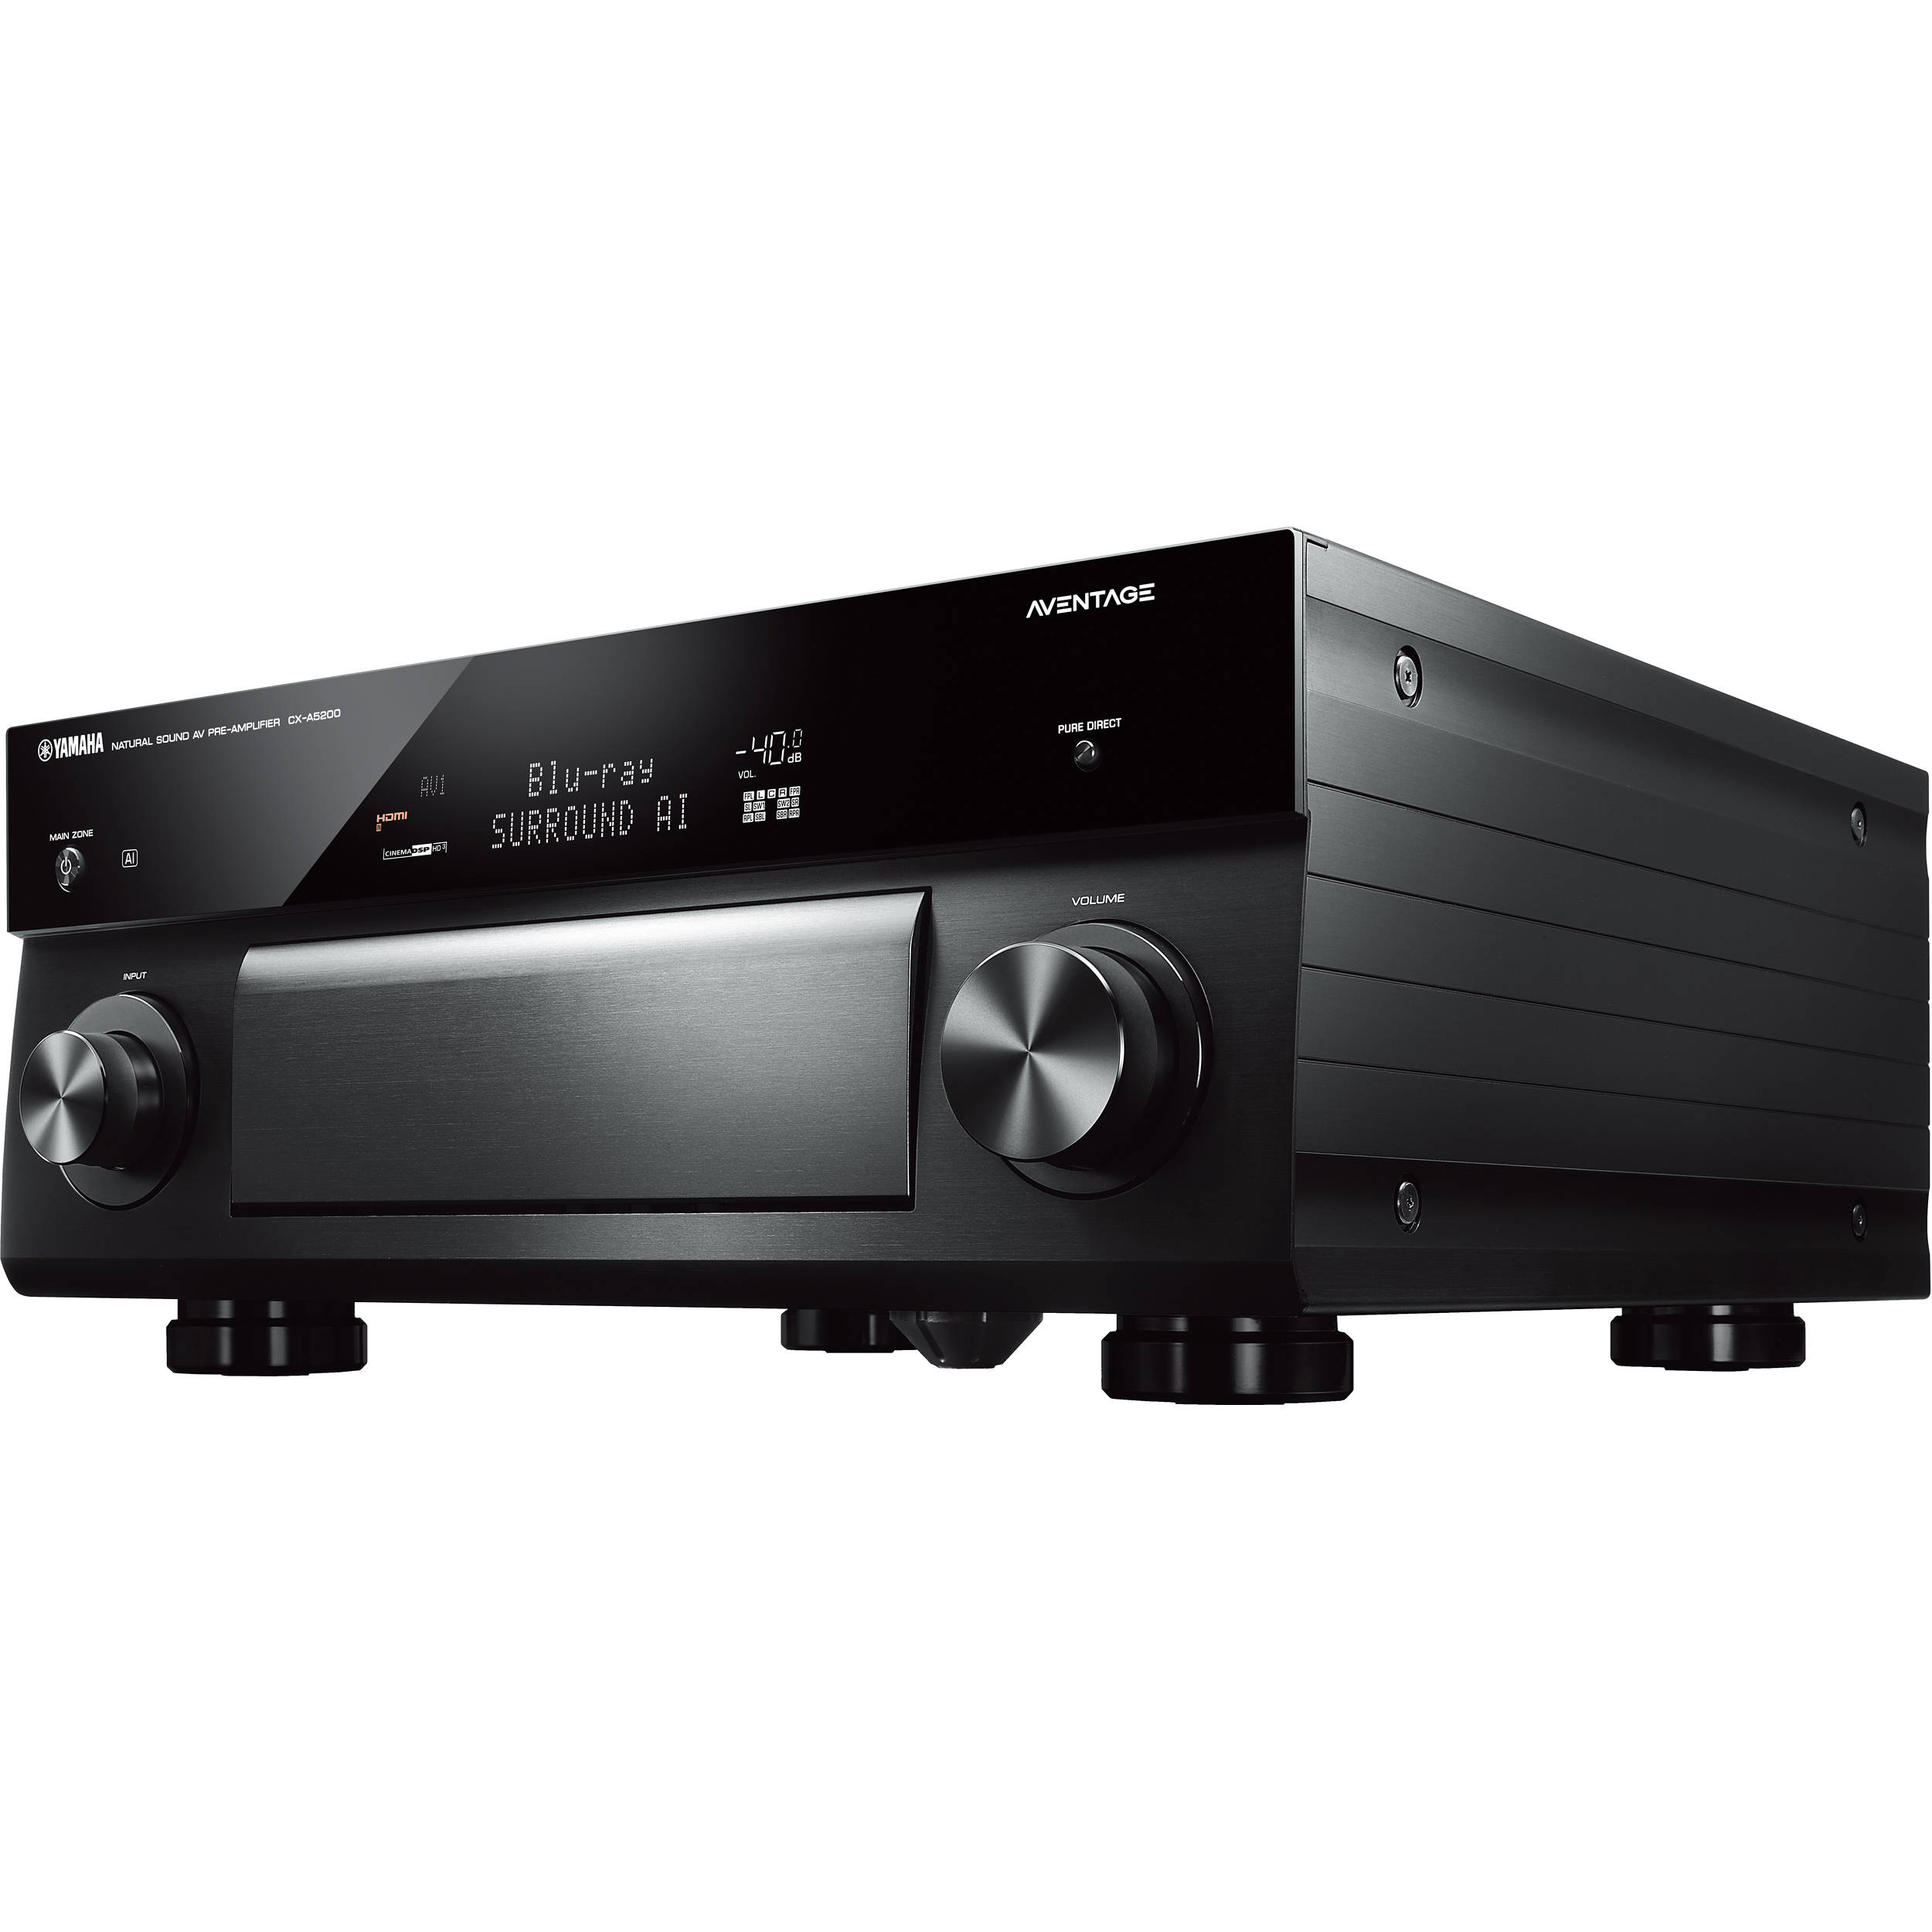 Yamaha AVENTAGE CX-A5200 11 2-Channel MusicCast Preamplifier